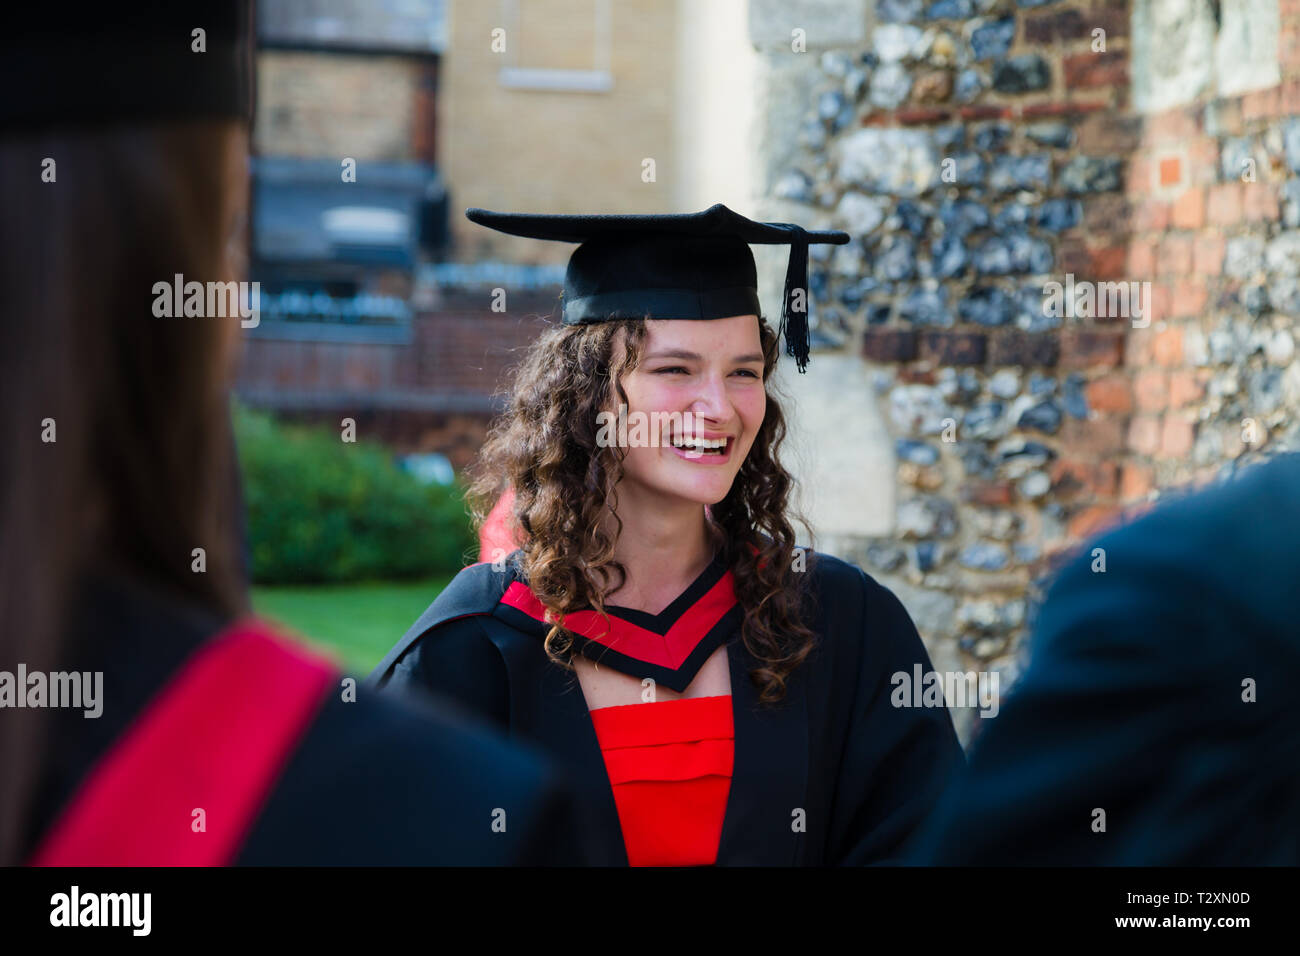 A happy student meets up with friends at a graduation ceremony at Chelmsford Cathedral. - Stock Image